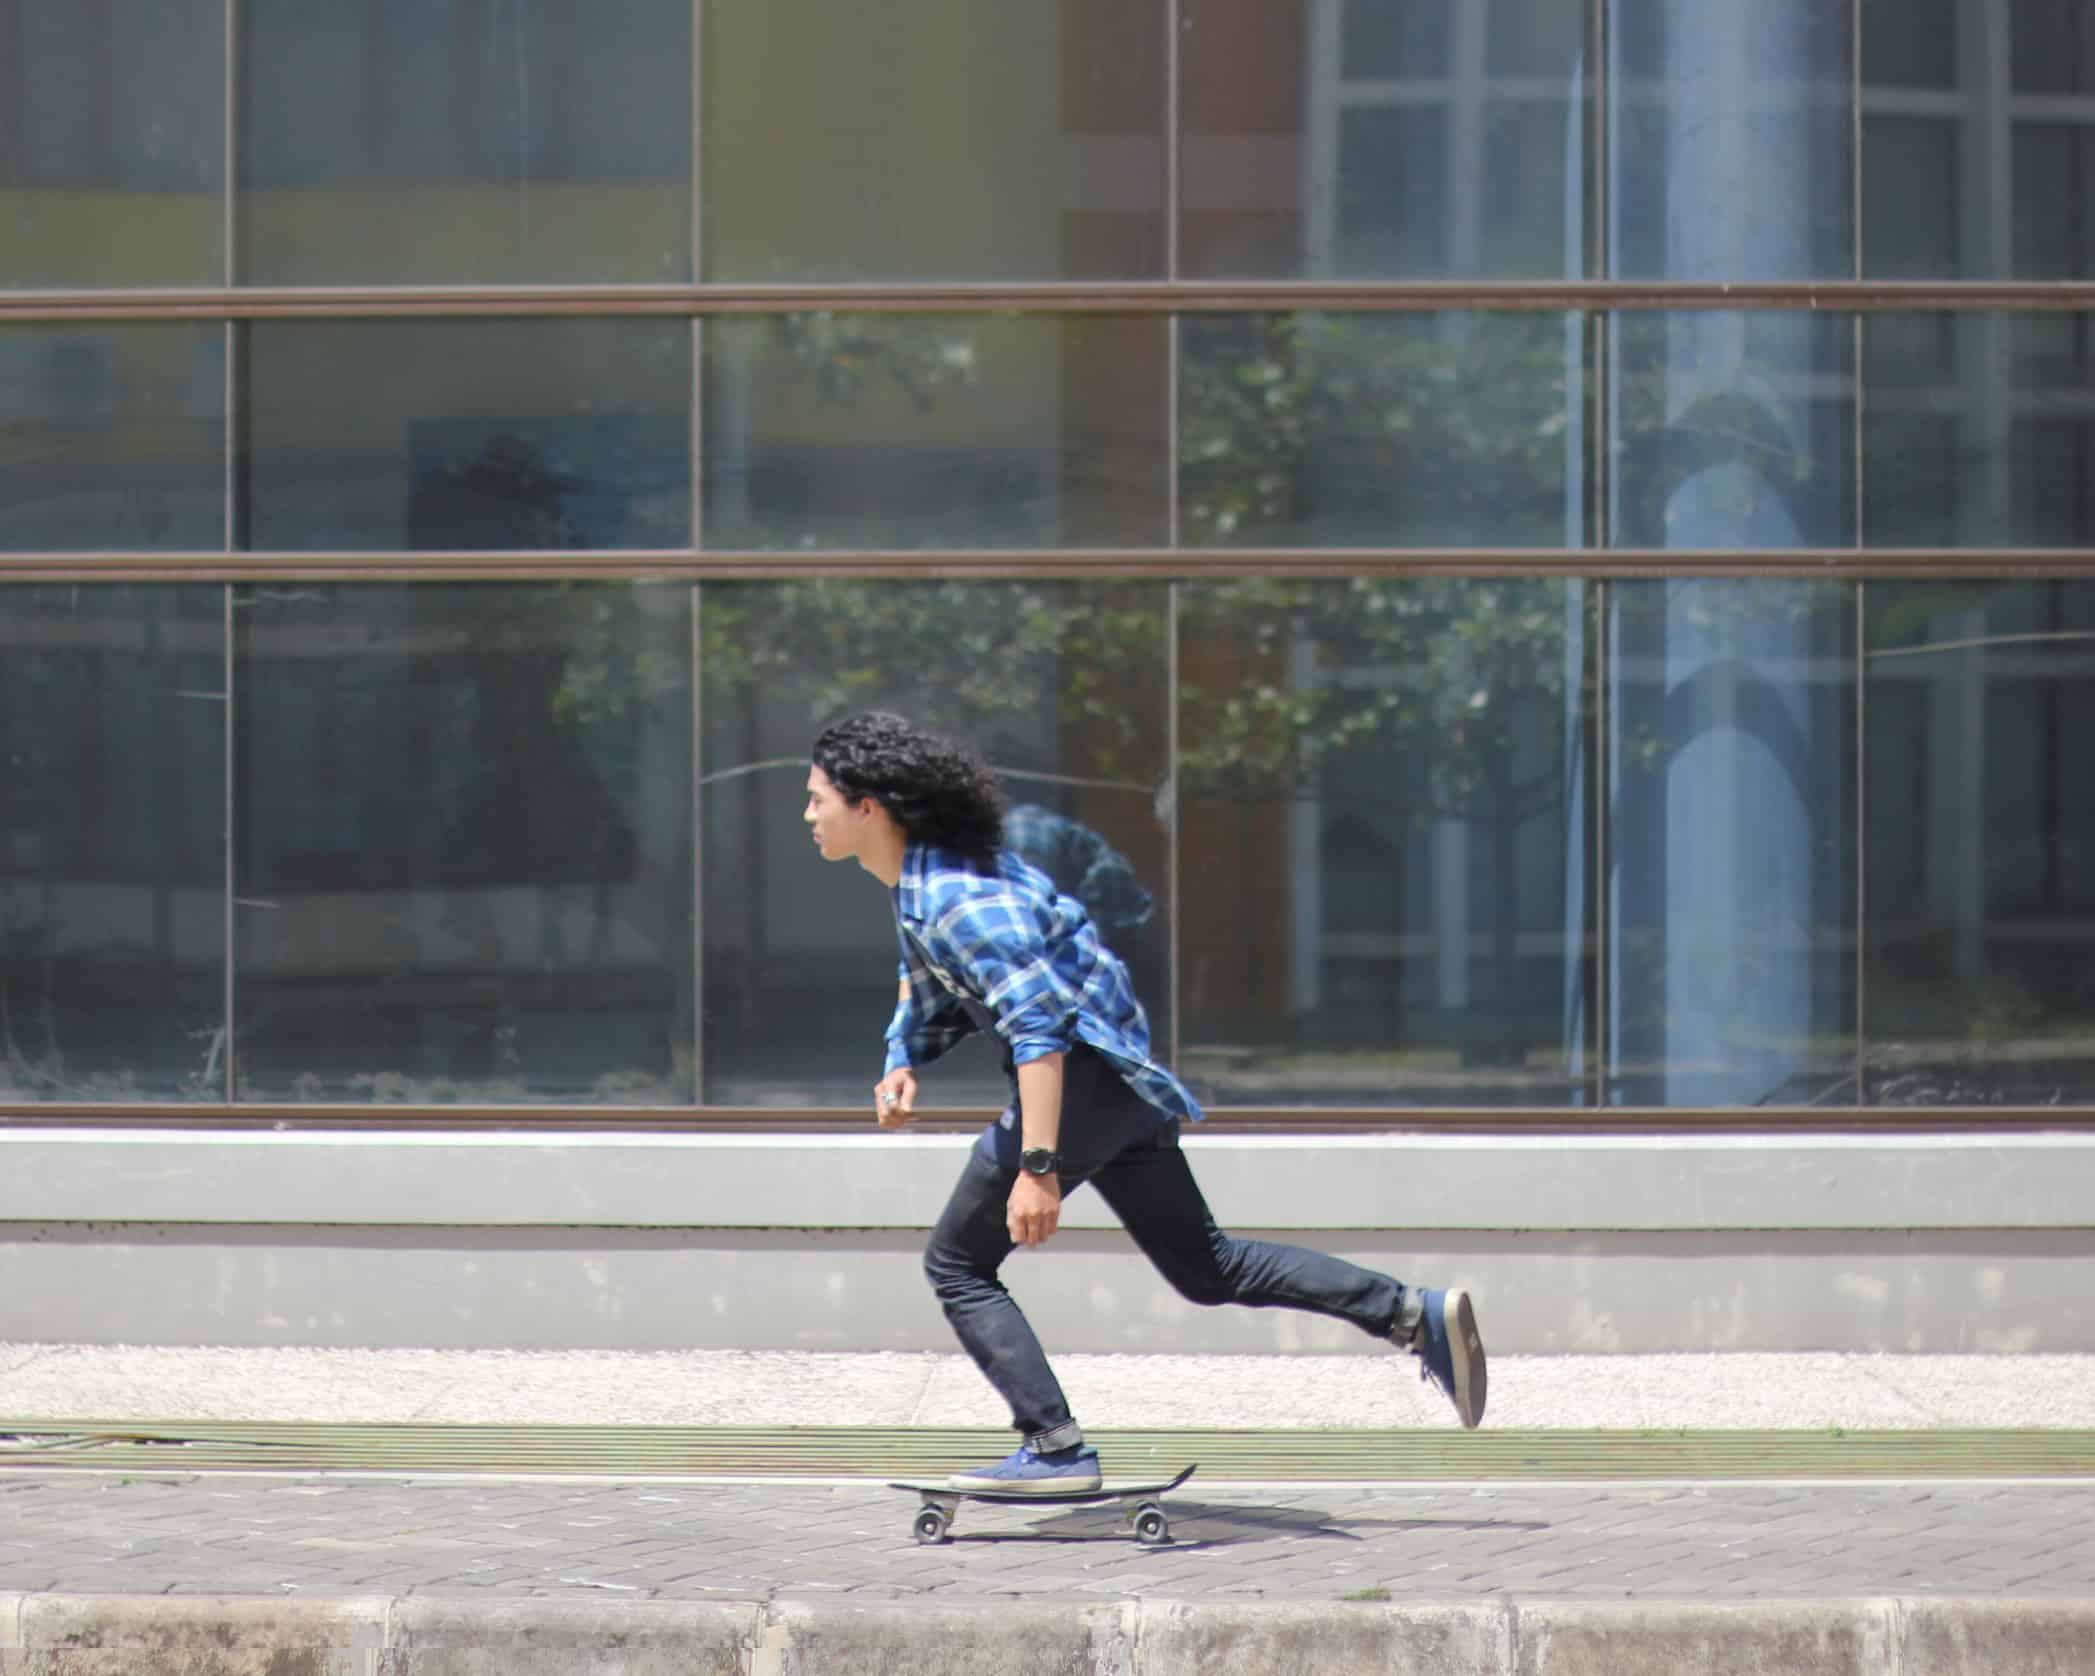 can skateboarding help you lose weight